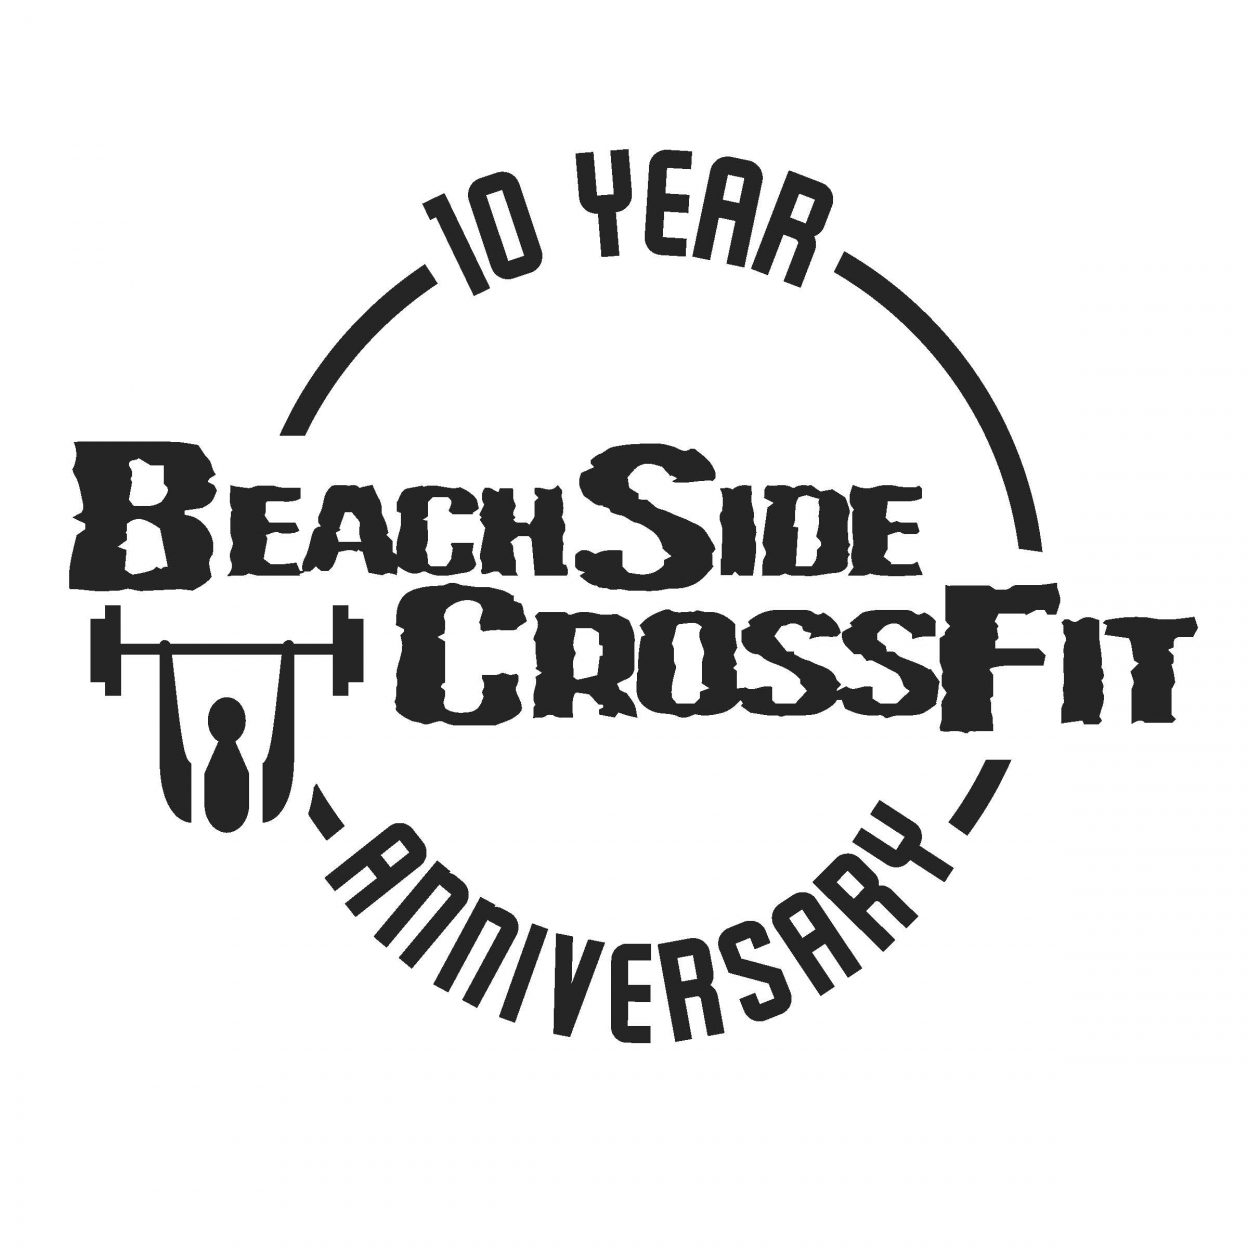 BeachSide CrossFit